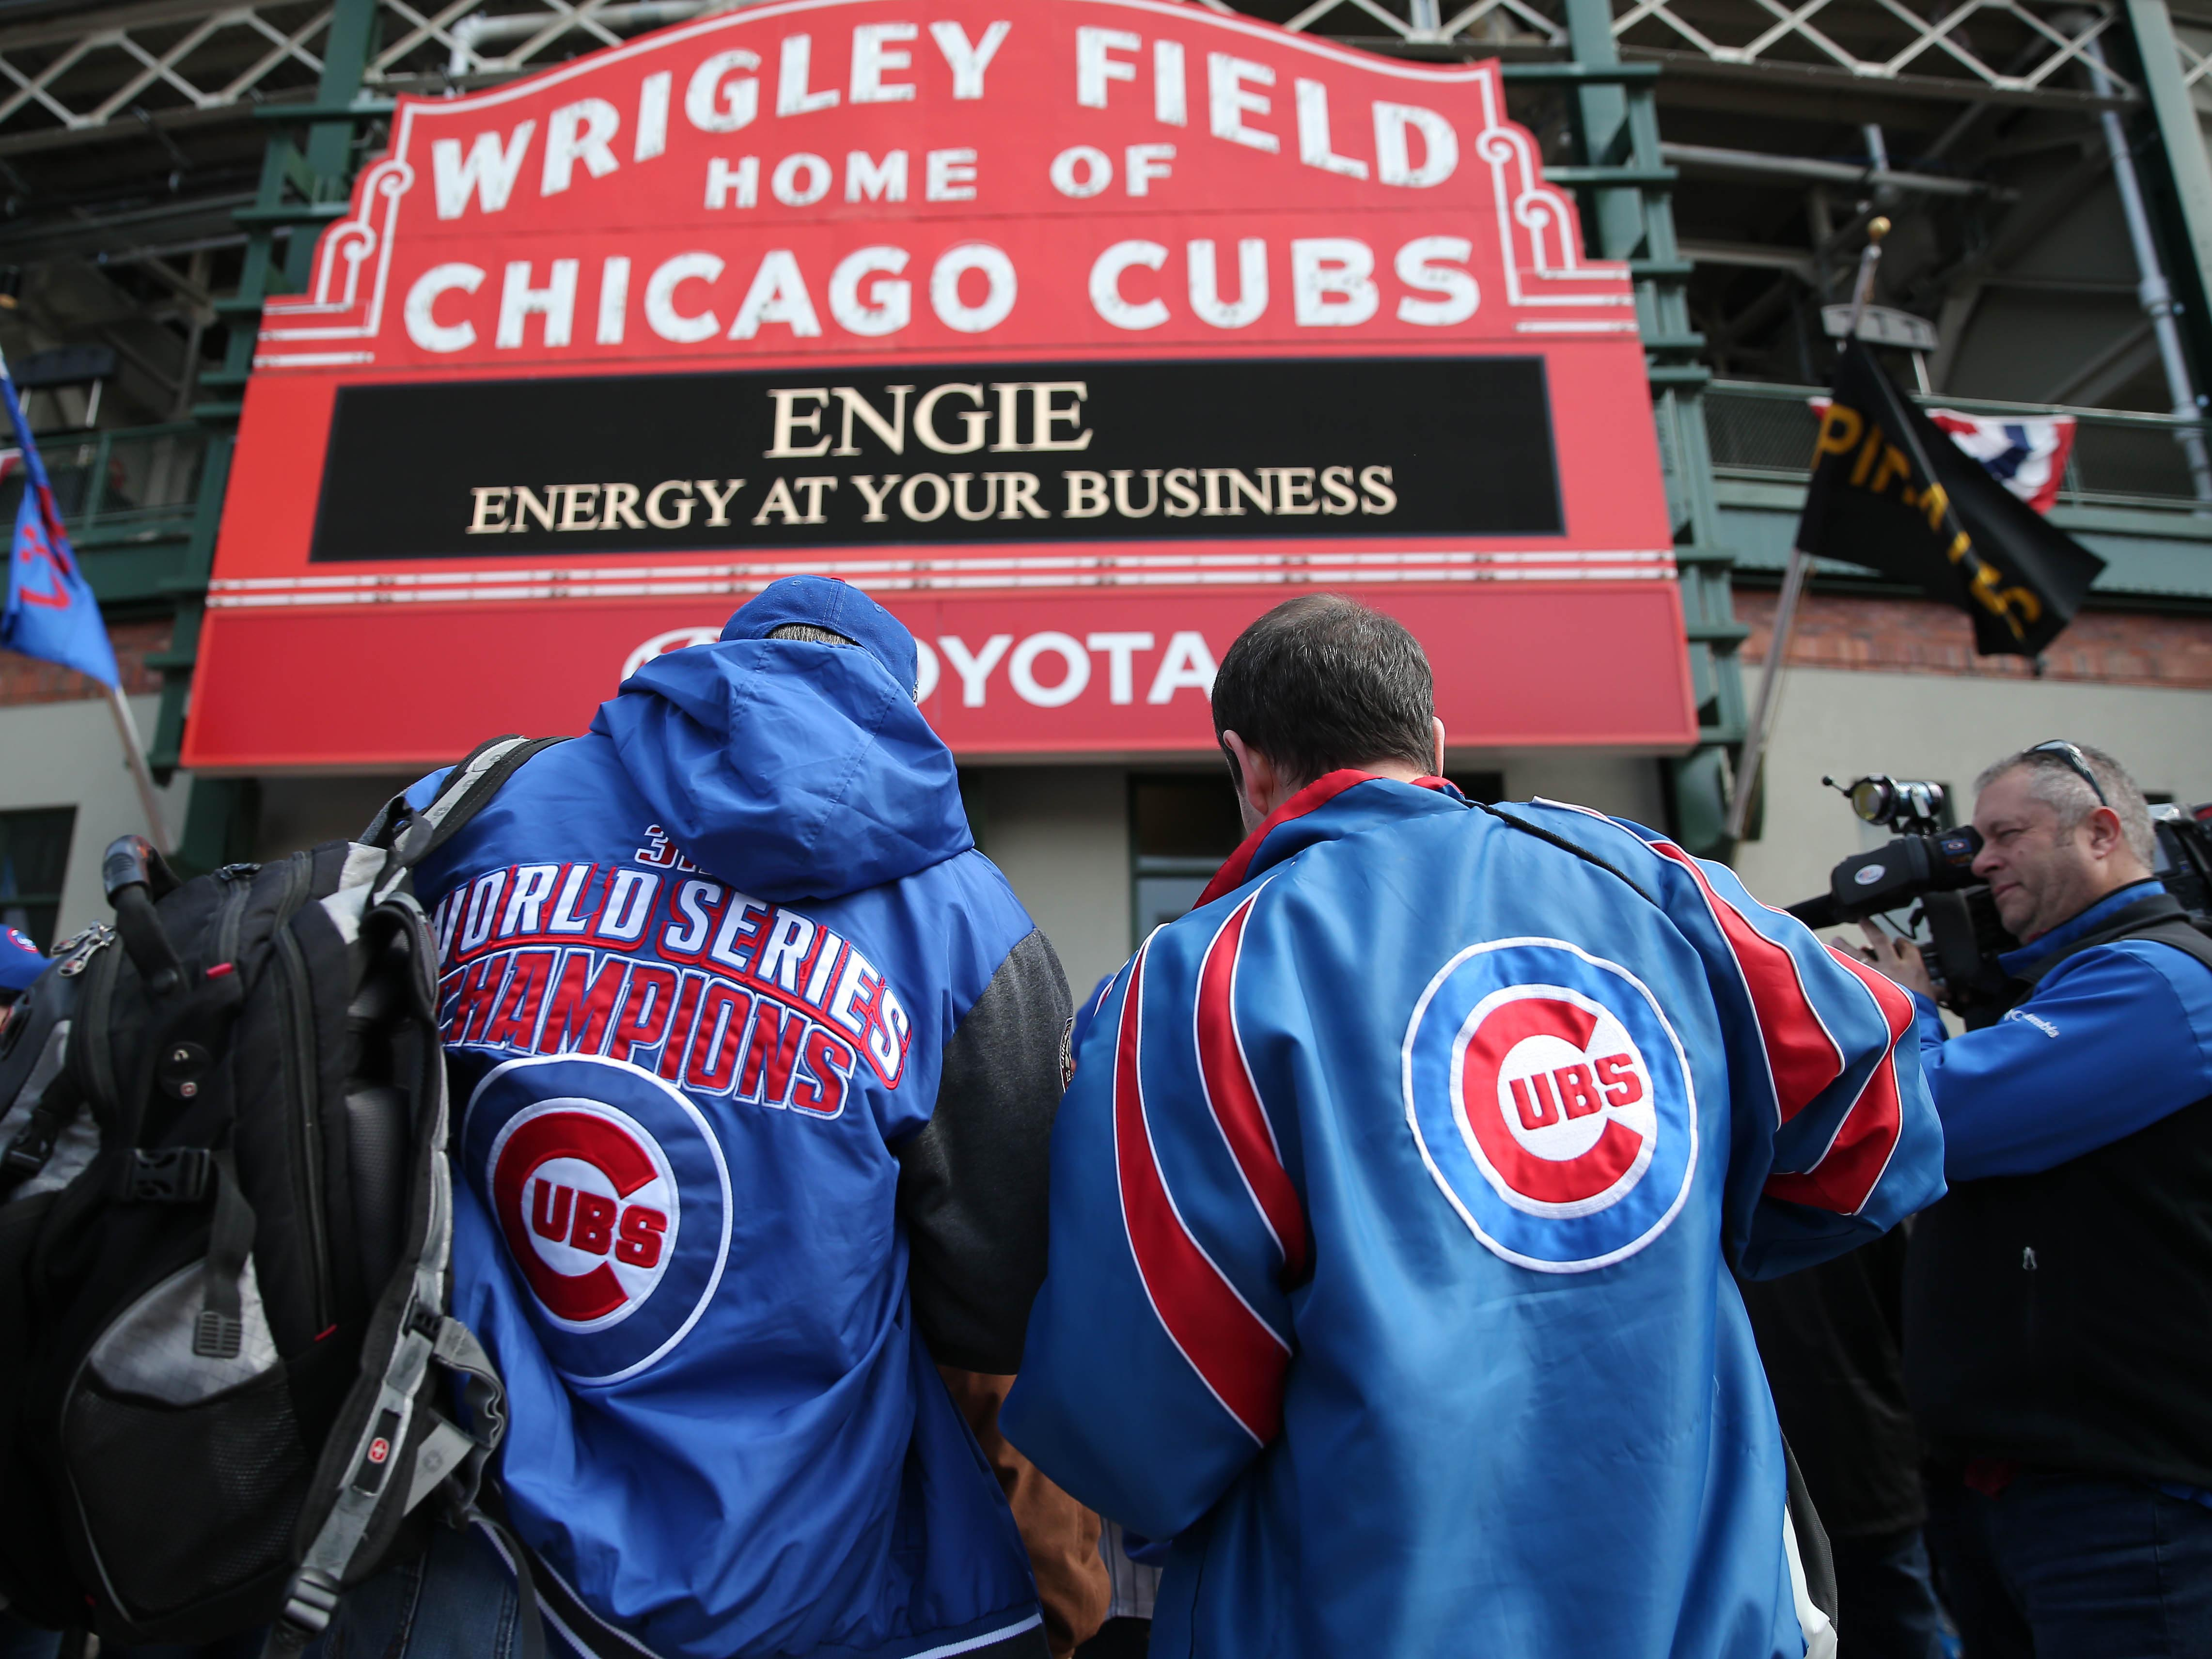 Larger Cubs fans take issue with new 'skinny seats' at Wrigley Field (PHOTO)